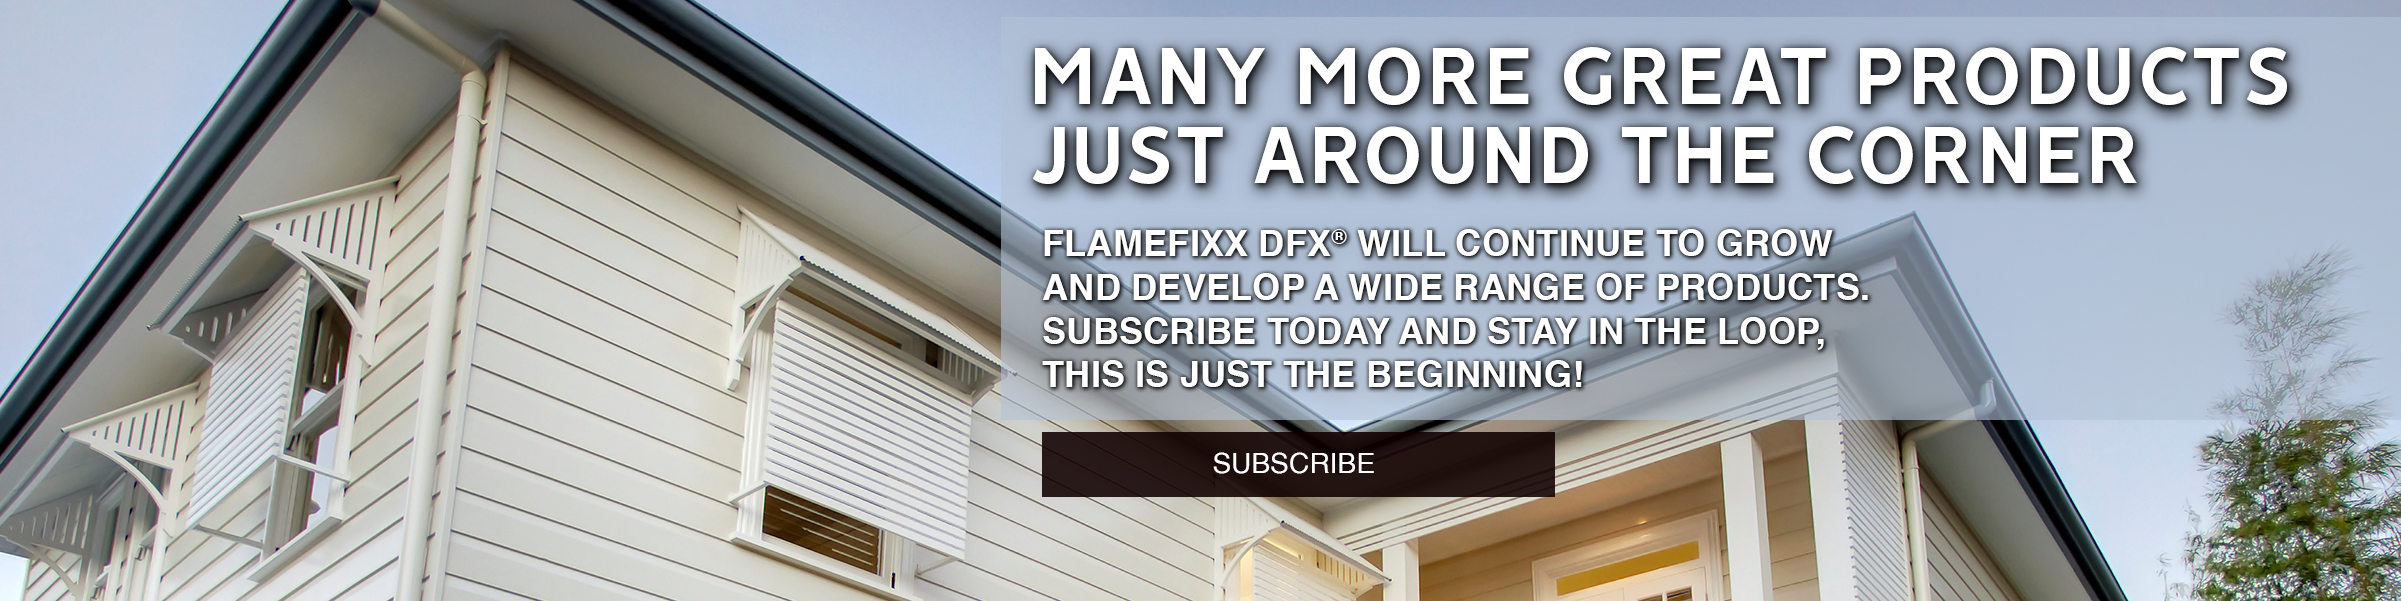 Great FLAMEfixx dfx™ Products